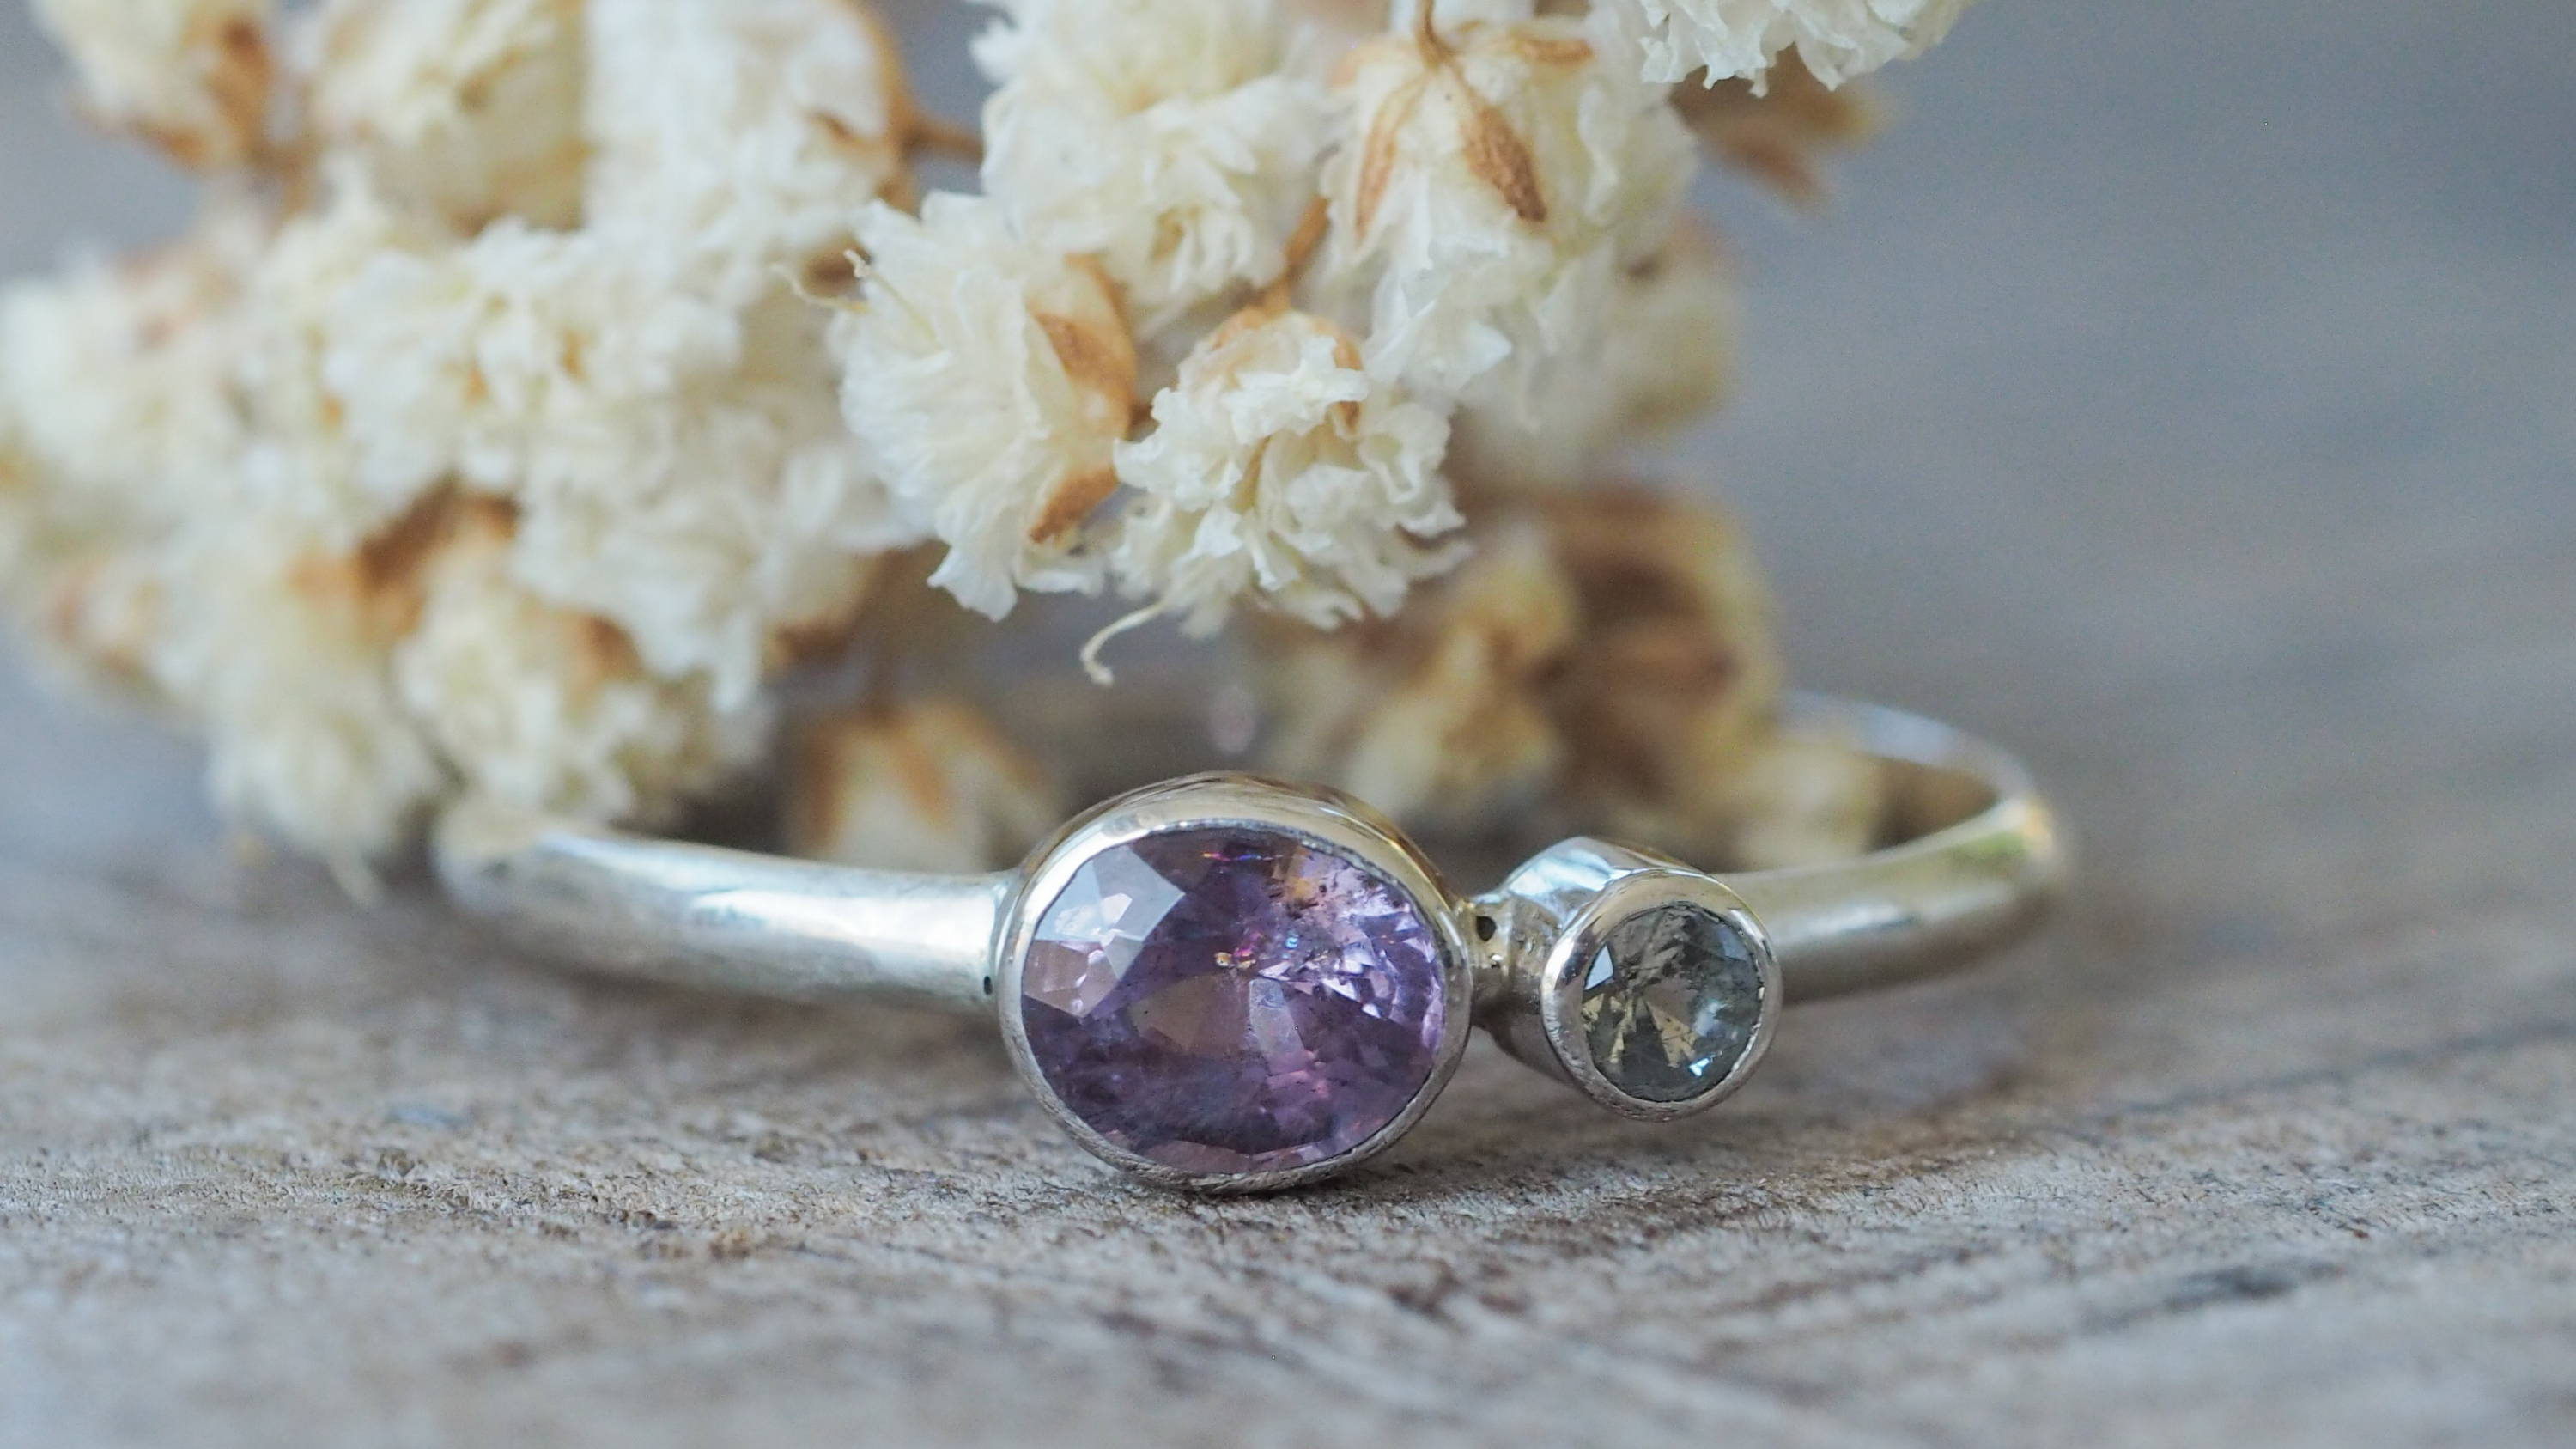 Dainty silver Spinal and Moonstone Ring